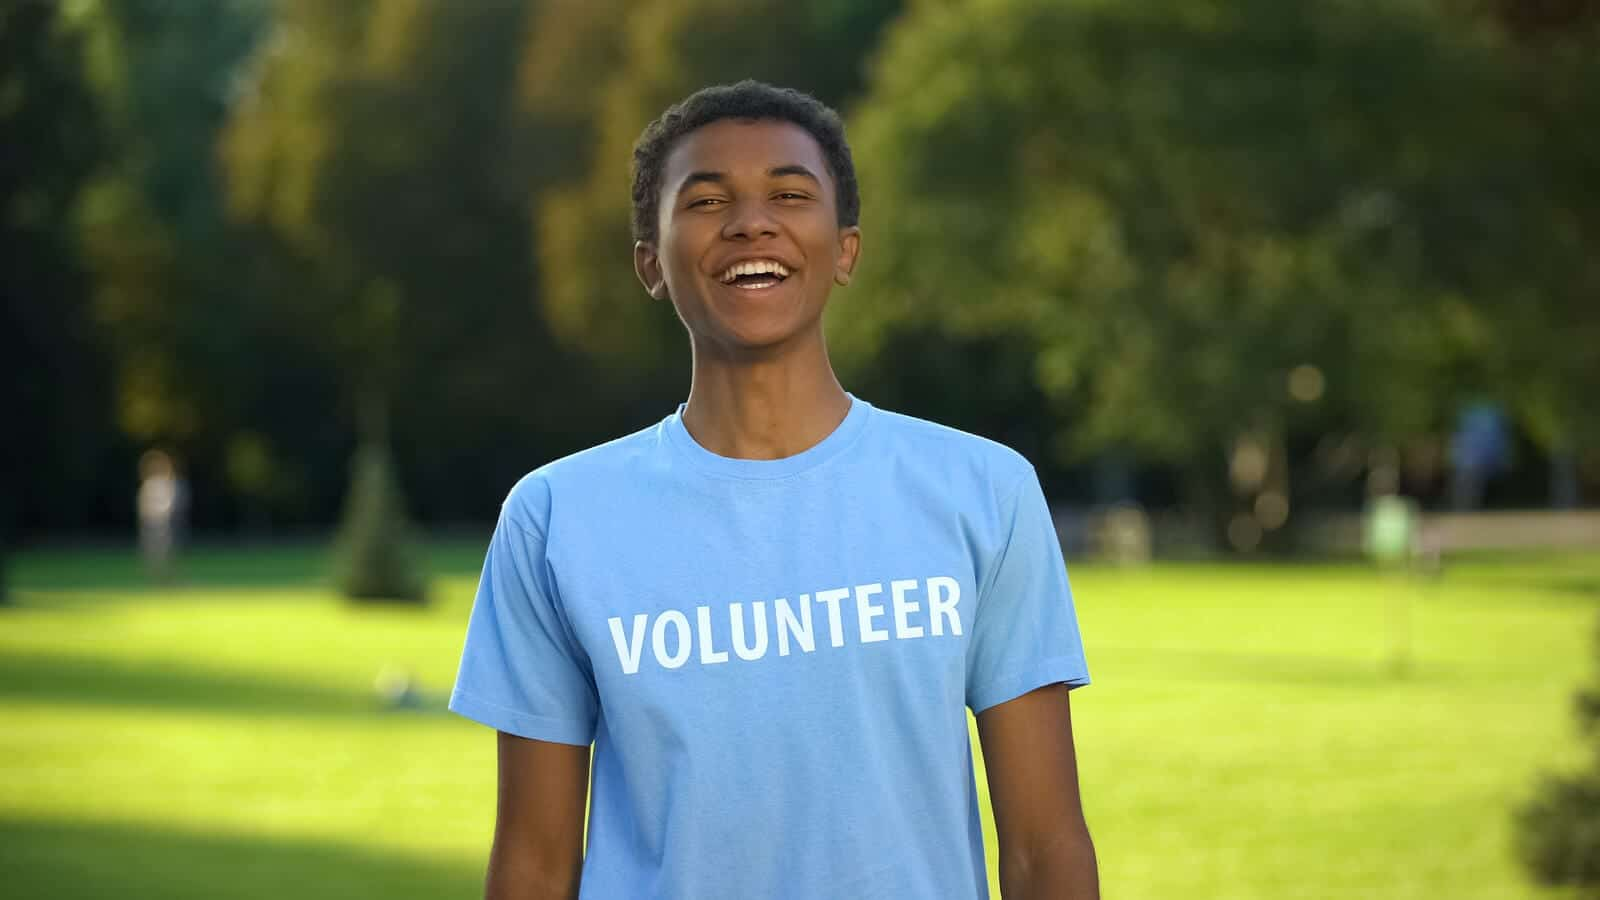 male_teen_volunteer_standing_outside